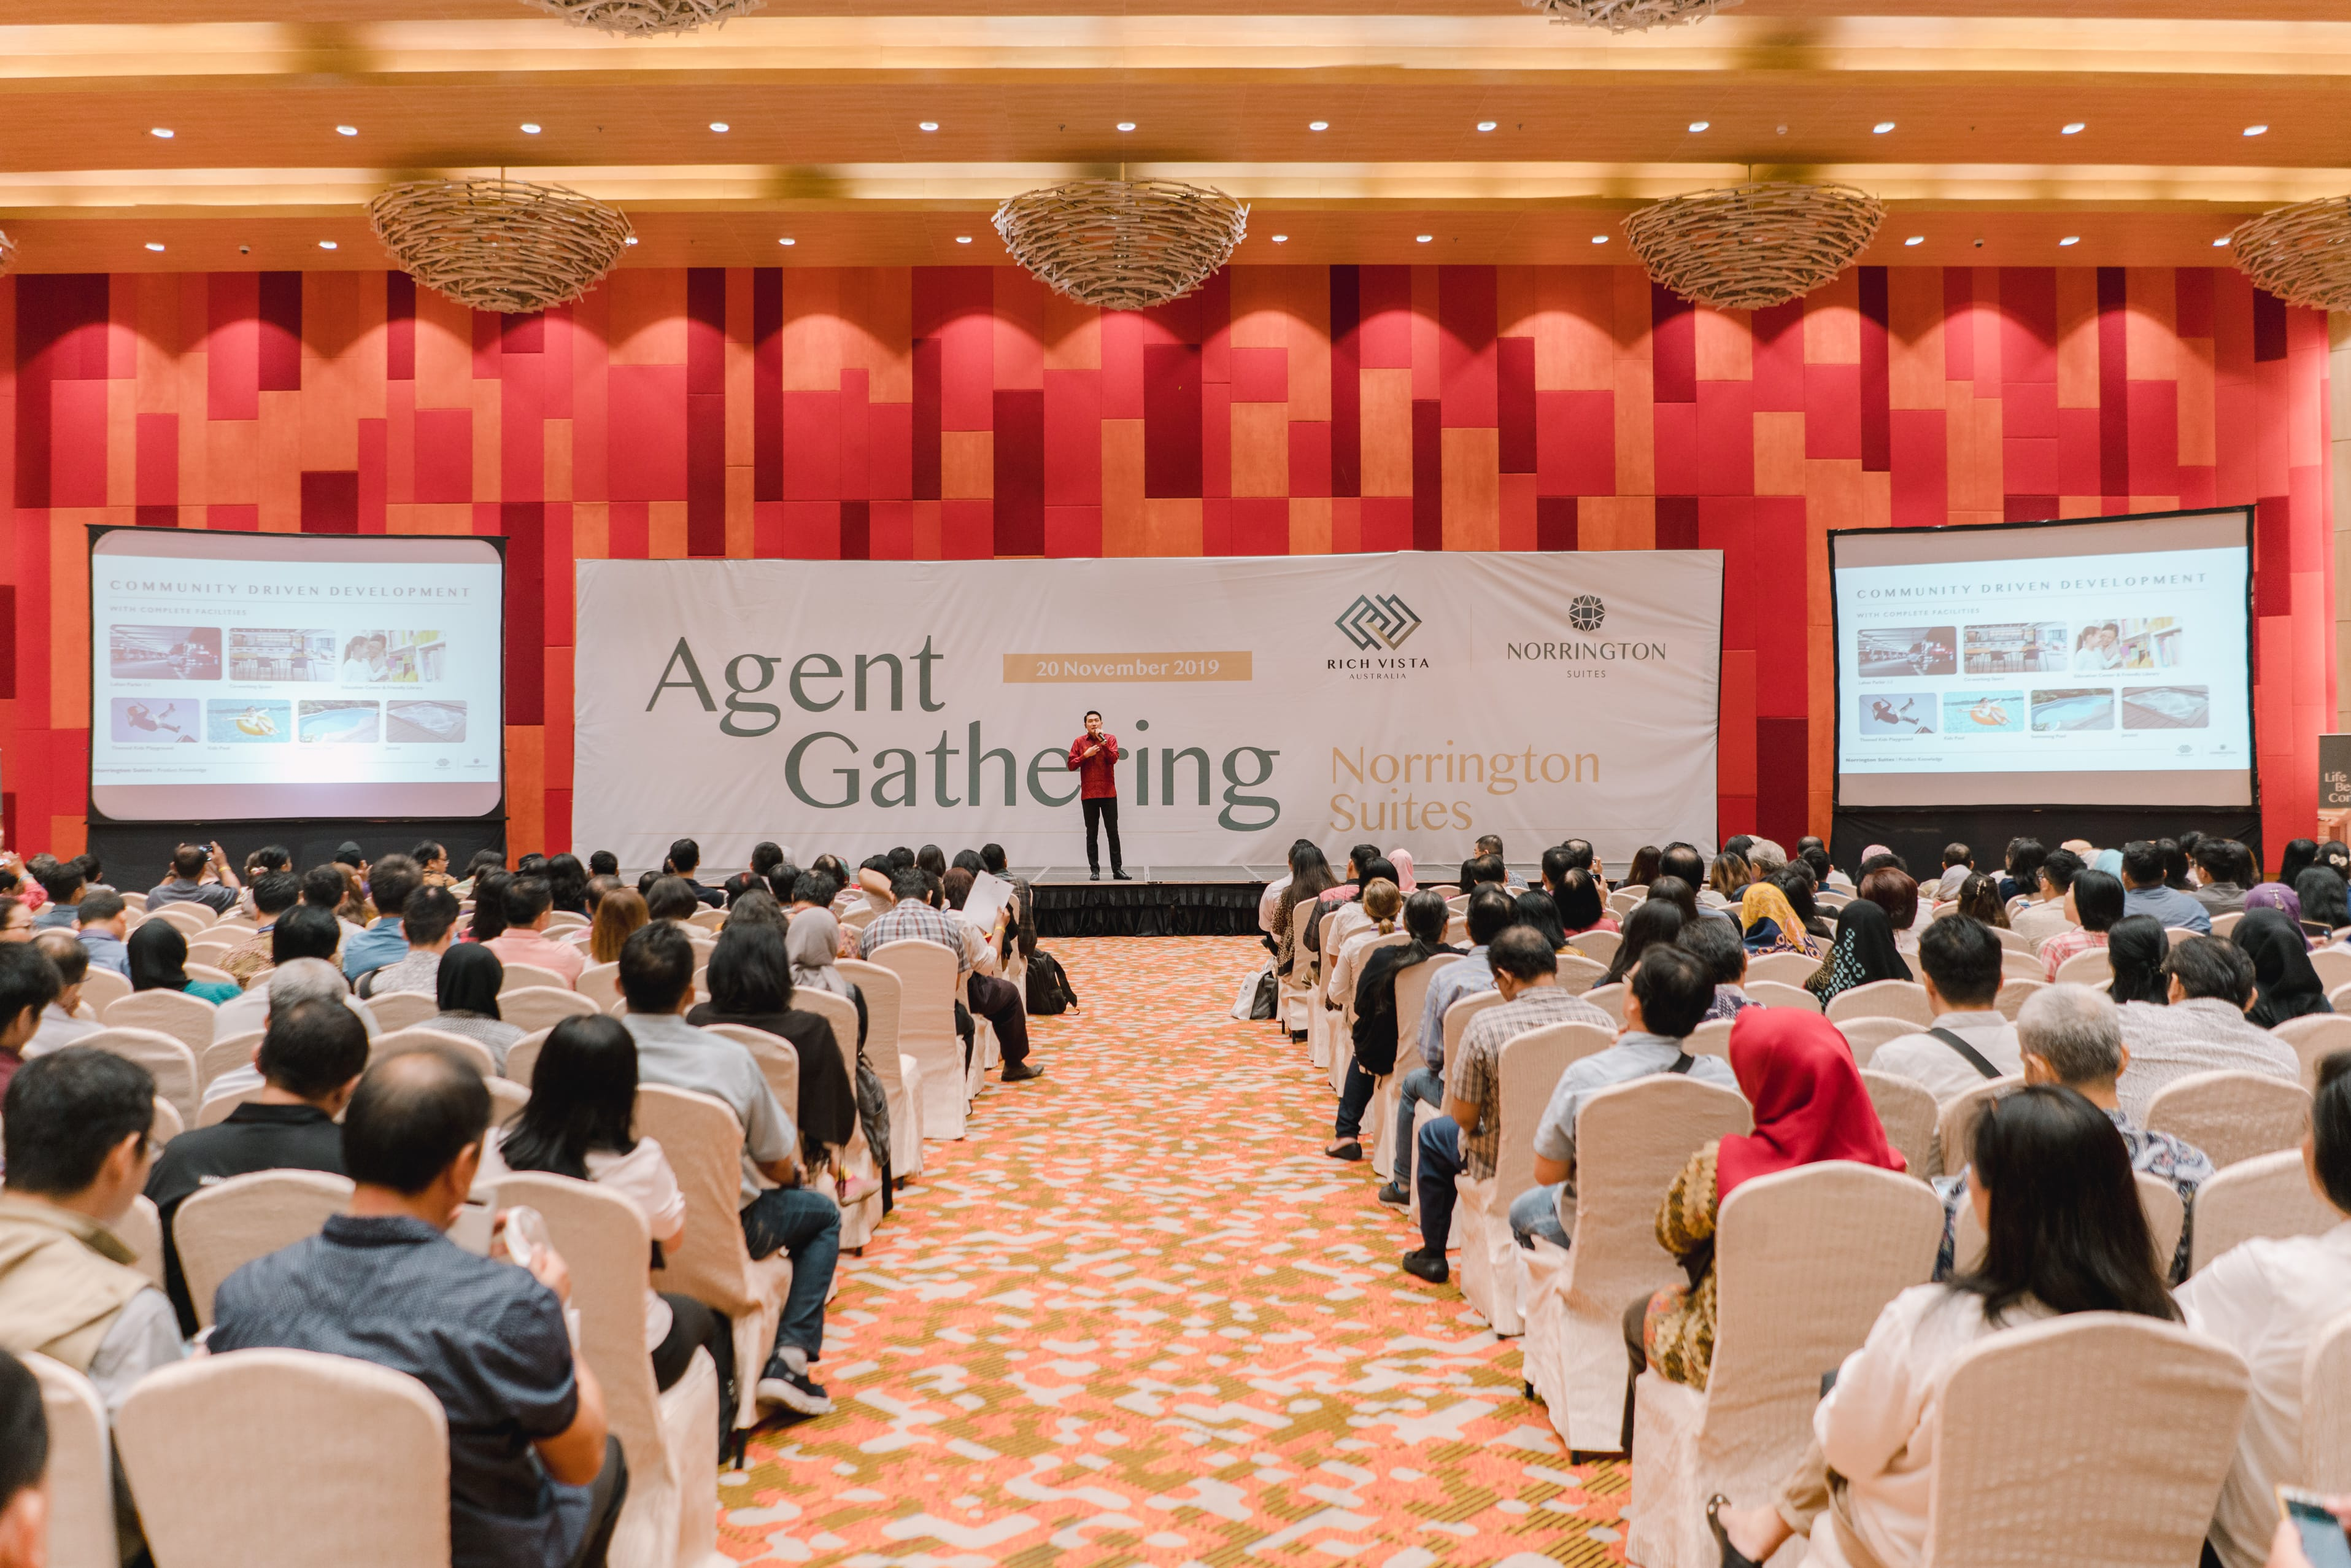 Norrington Suites Agent Gathering